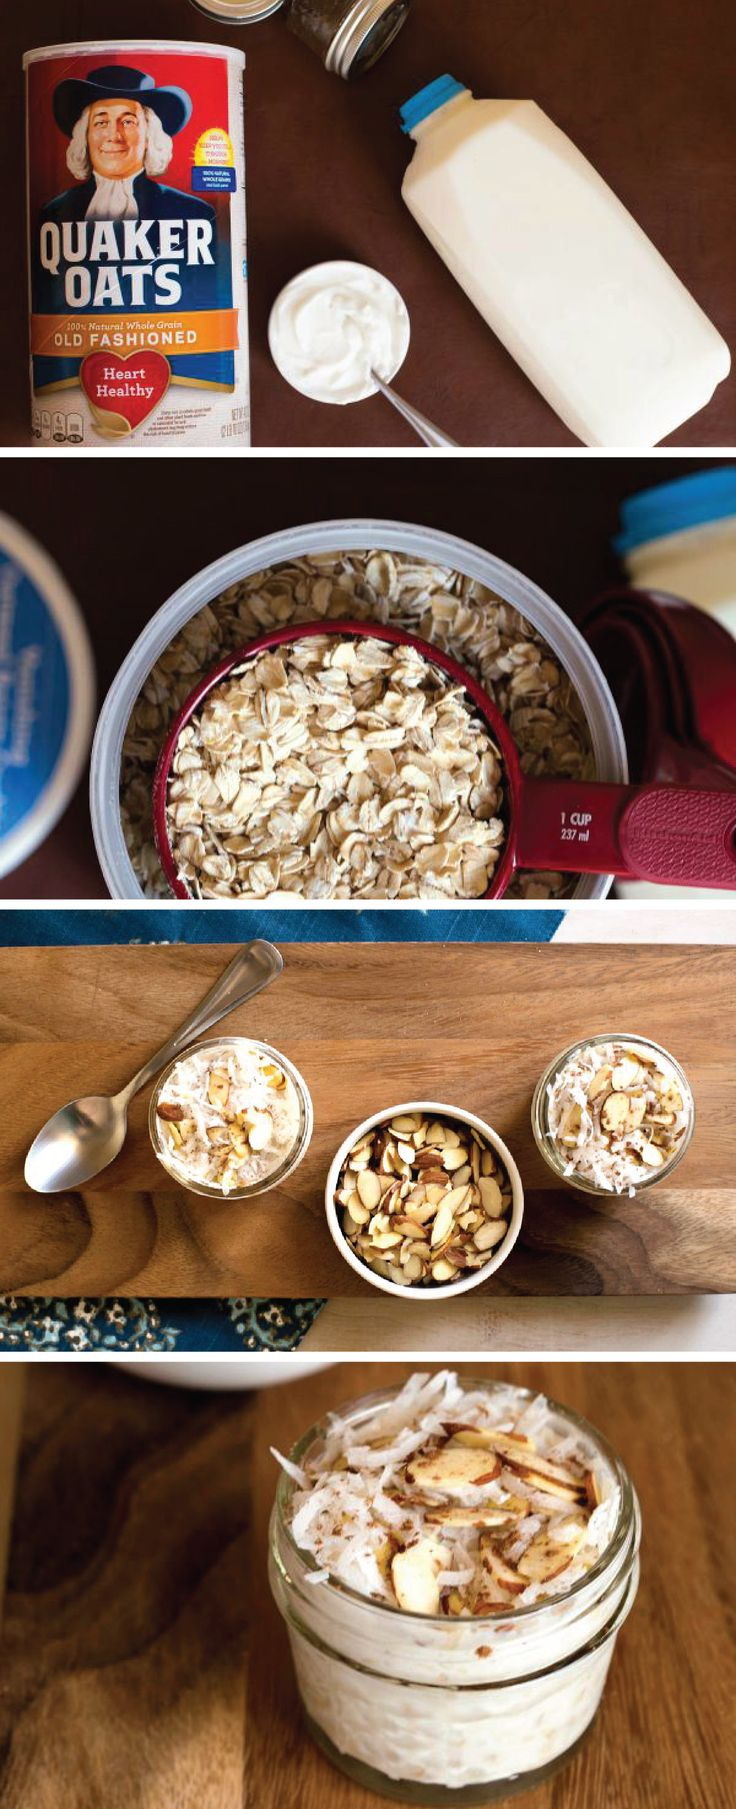 How To Prepare Quaker Old Fashioned Oats